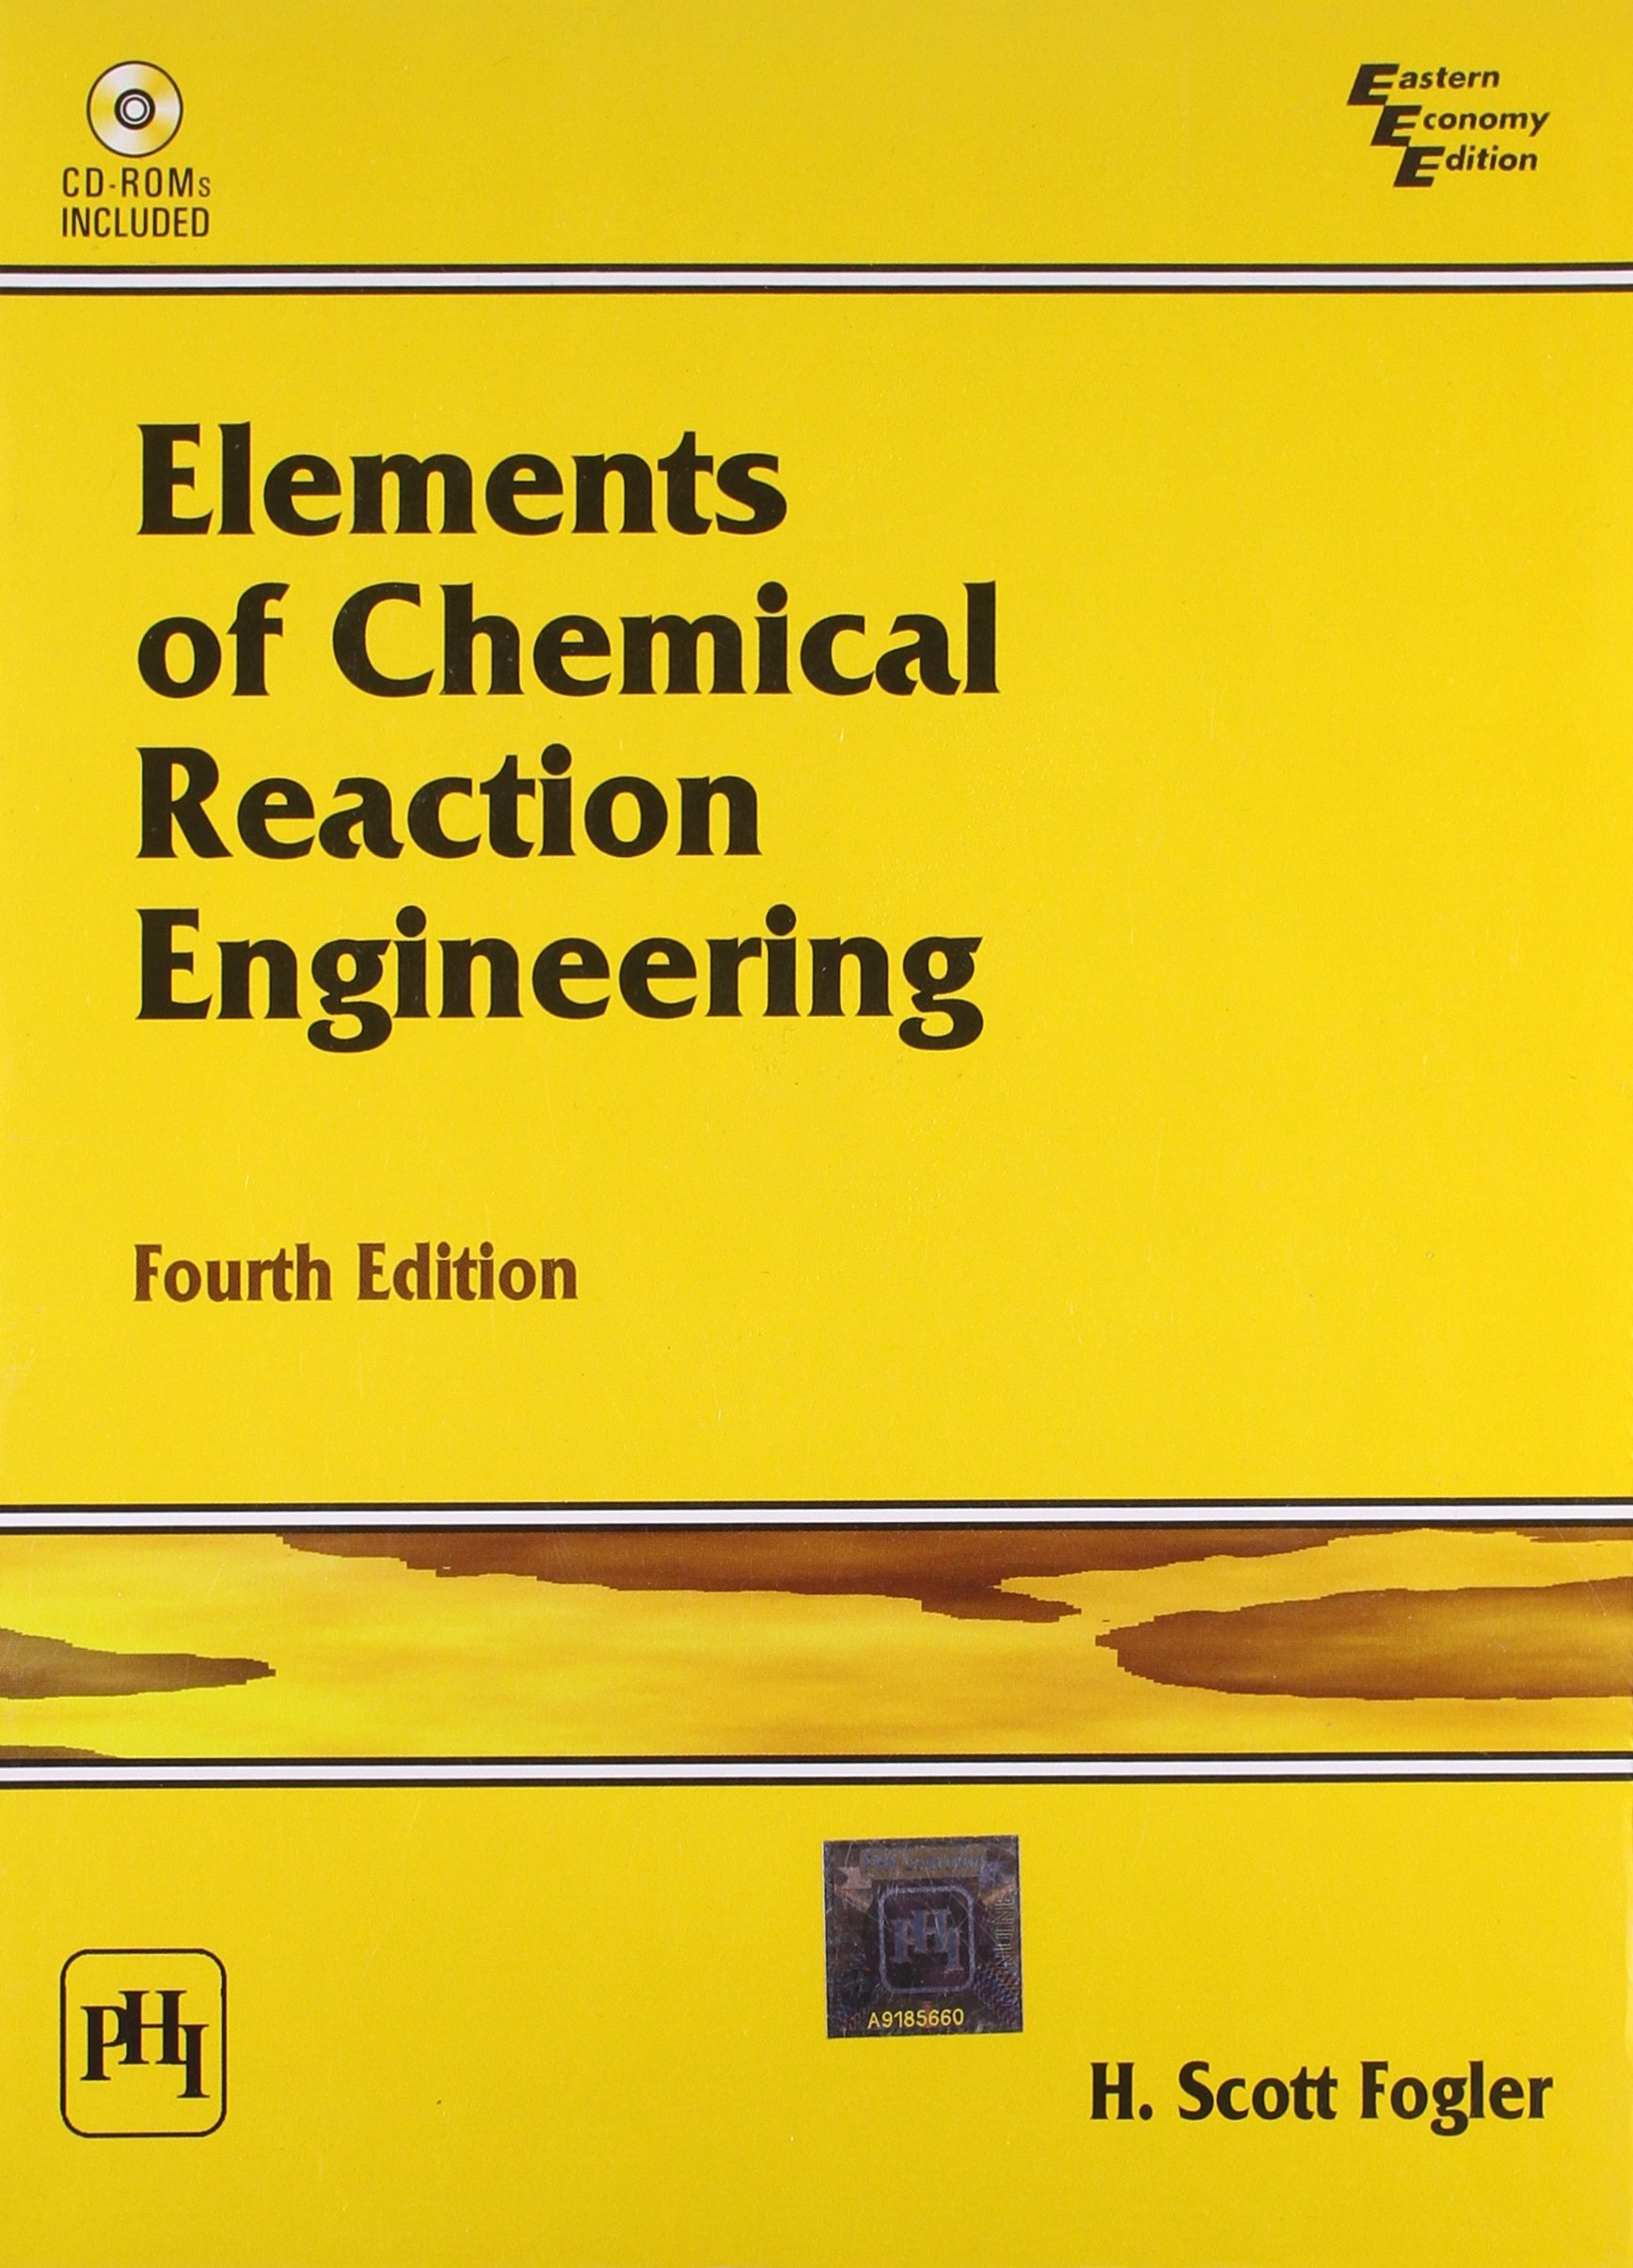 Elements of Chemical Reaction Engineering: H. Scott Fogler: 9787502741006:  Amazon.com: Books